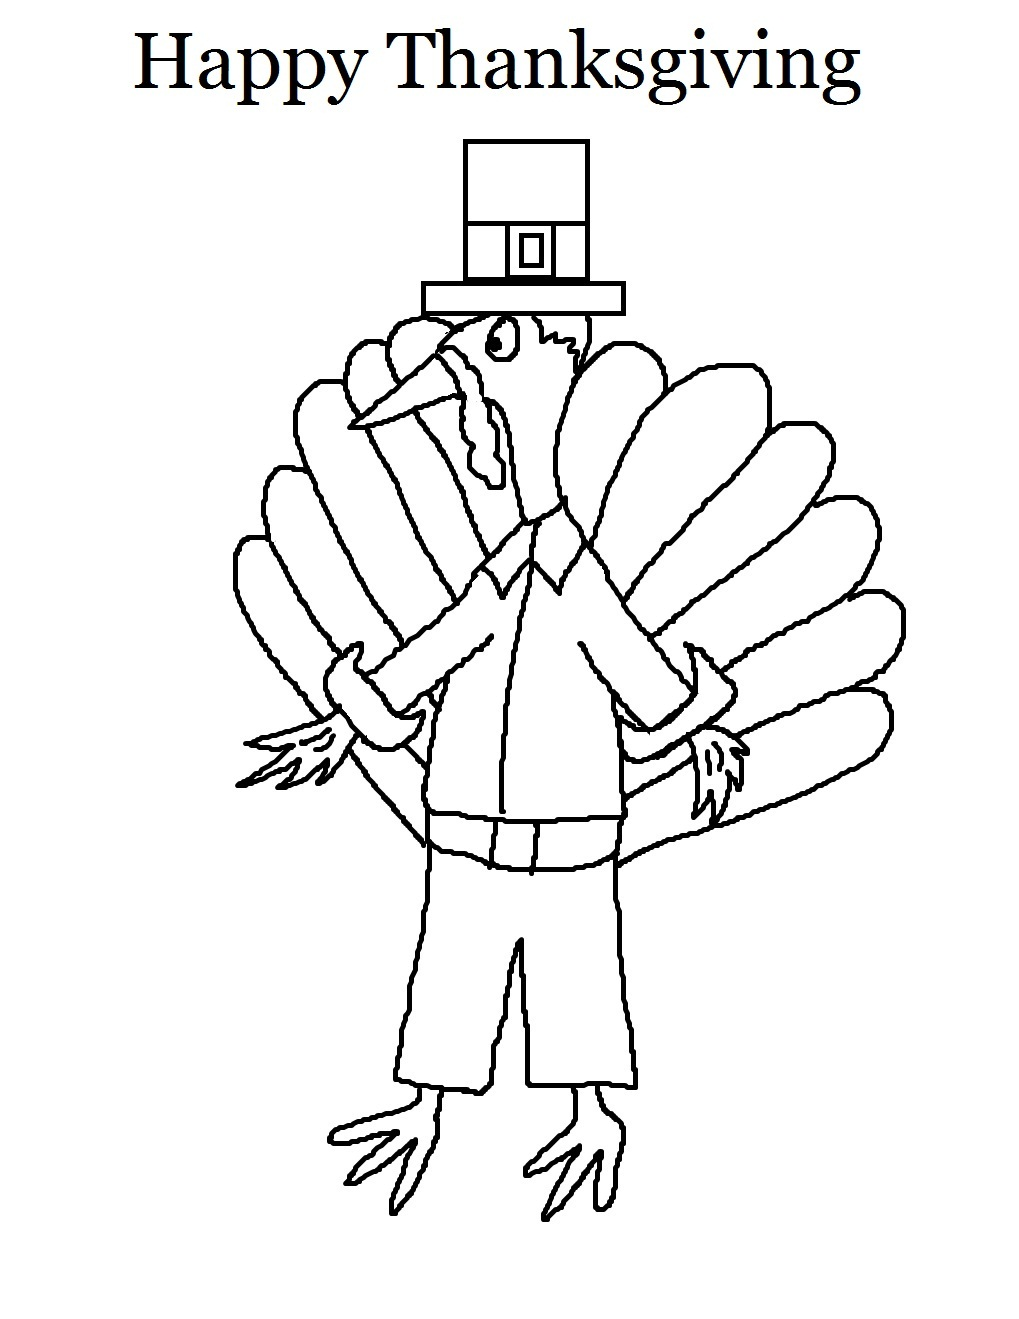 Free Coloring Pages Of Turkey Thanksgiving Thanksgiving Pilgrim Coloring Pages